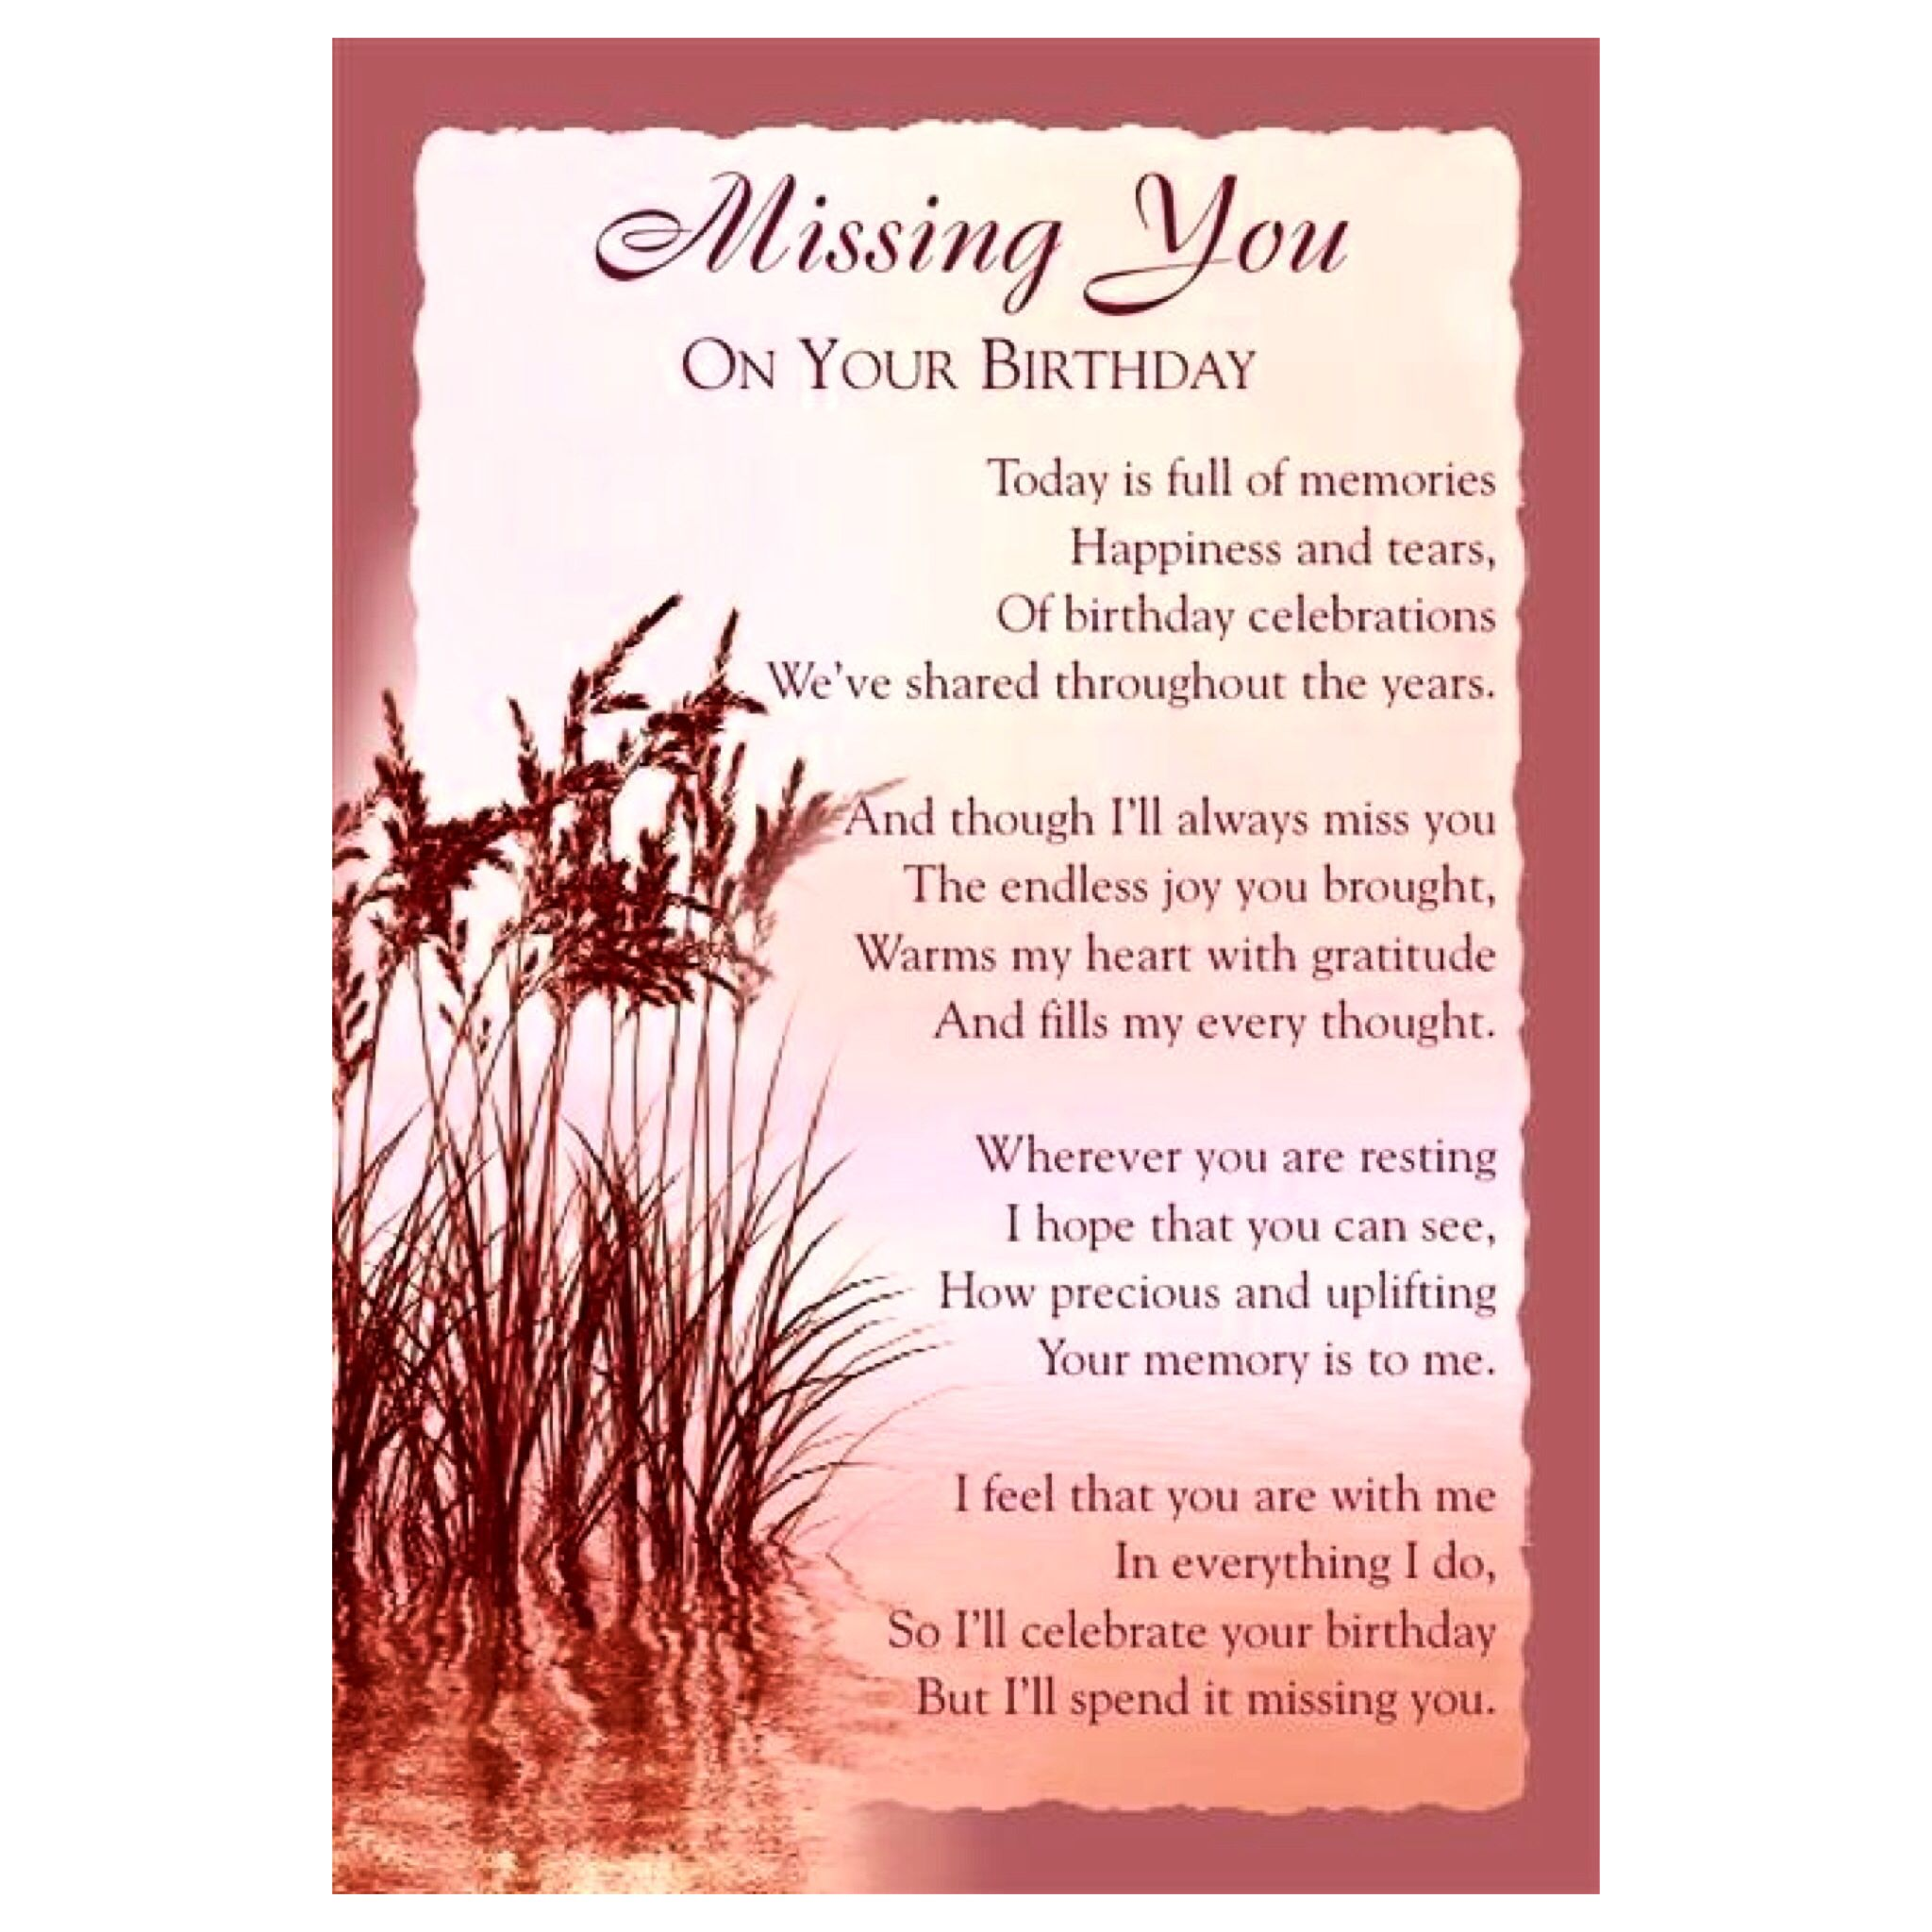 Missing you... Mom in heaven quotes, Birthday in heaven